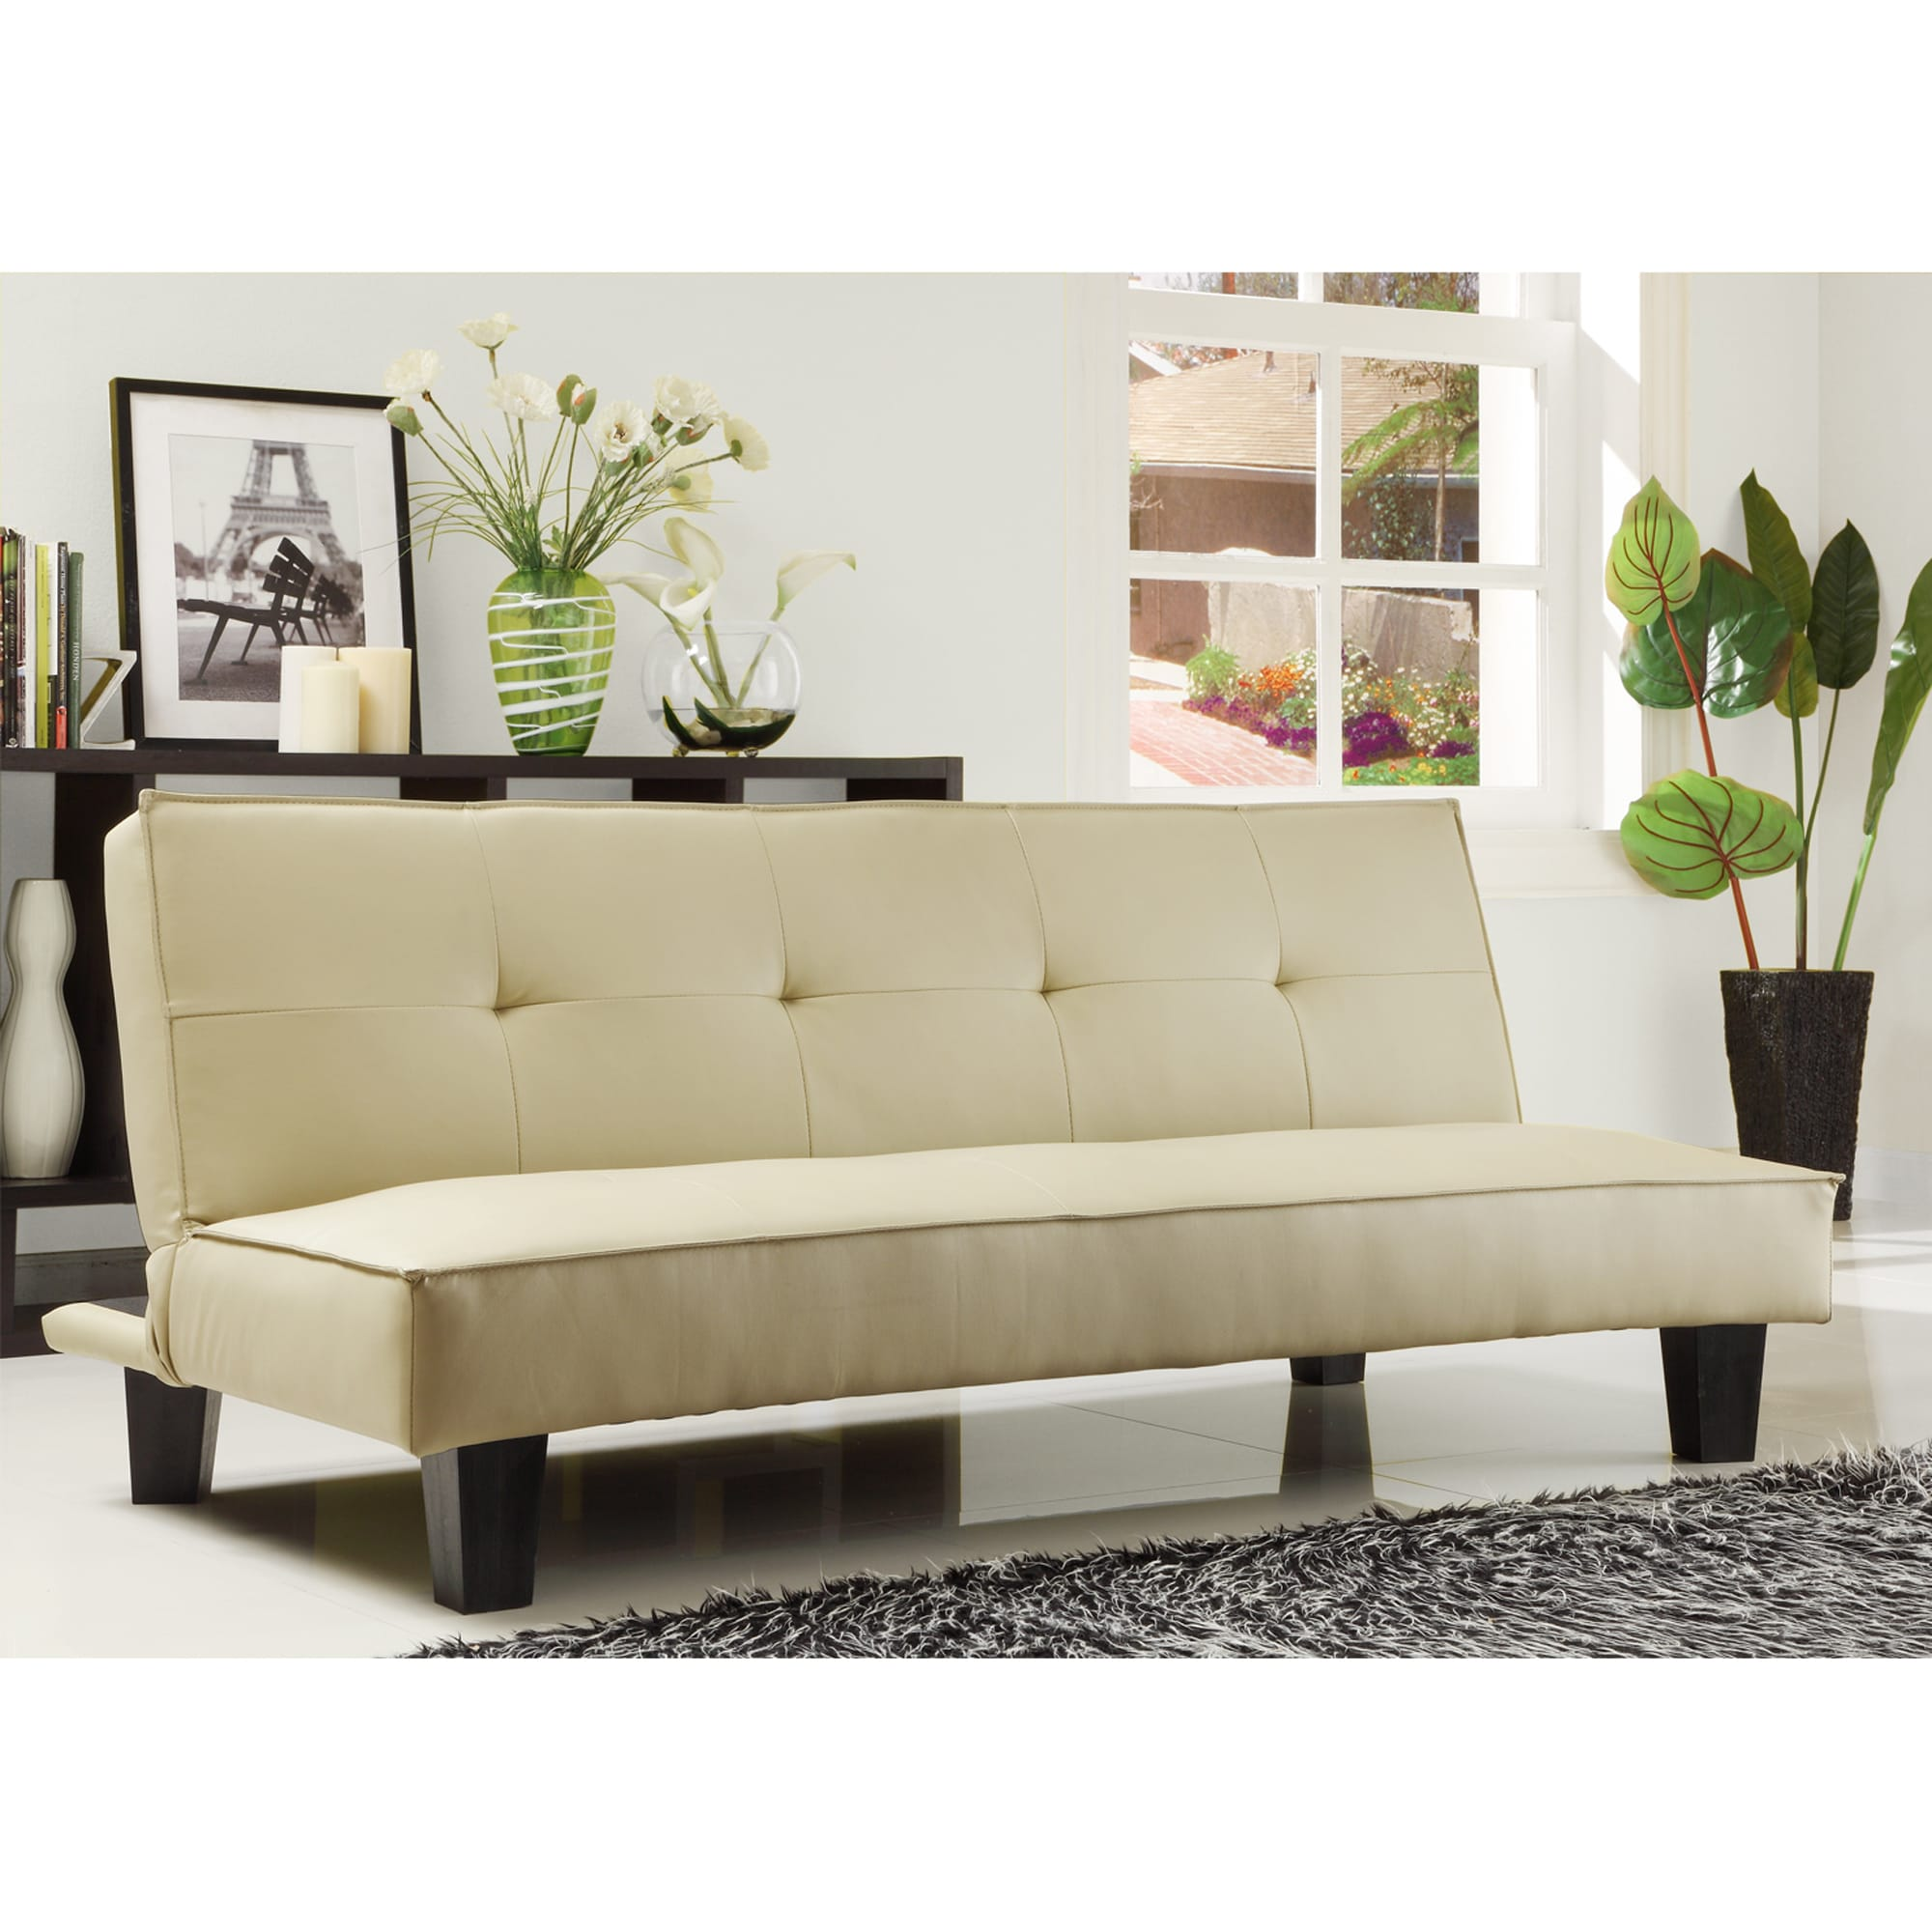 Bento Mini Futon Sofa Bed Inspire Q Modern On Free Shipping Today 5947208